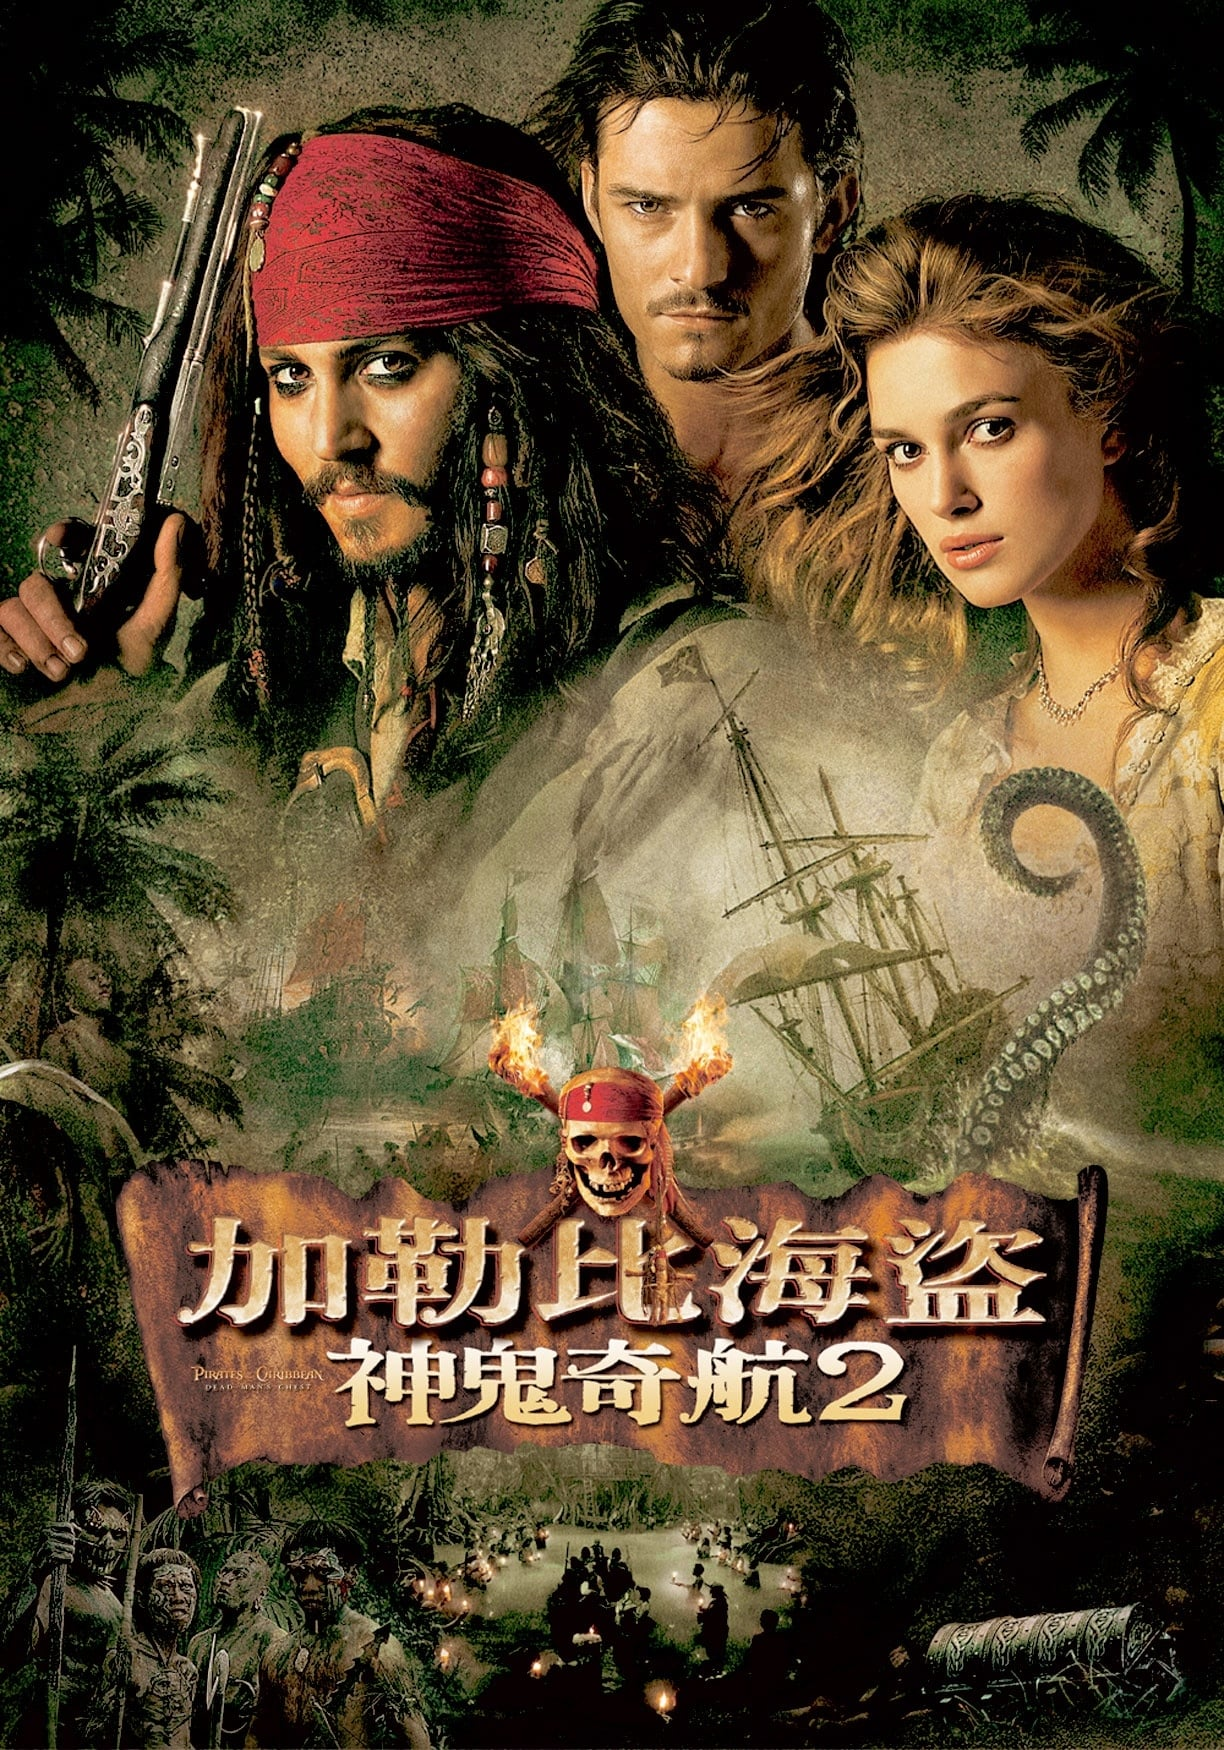 Watch Pirates of the Caribbean: Dead Man's Chest (2006) Full Movie Online Free - CineFOX